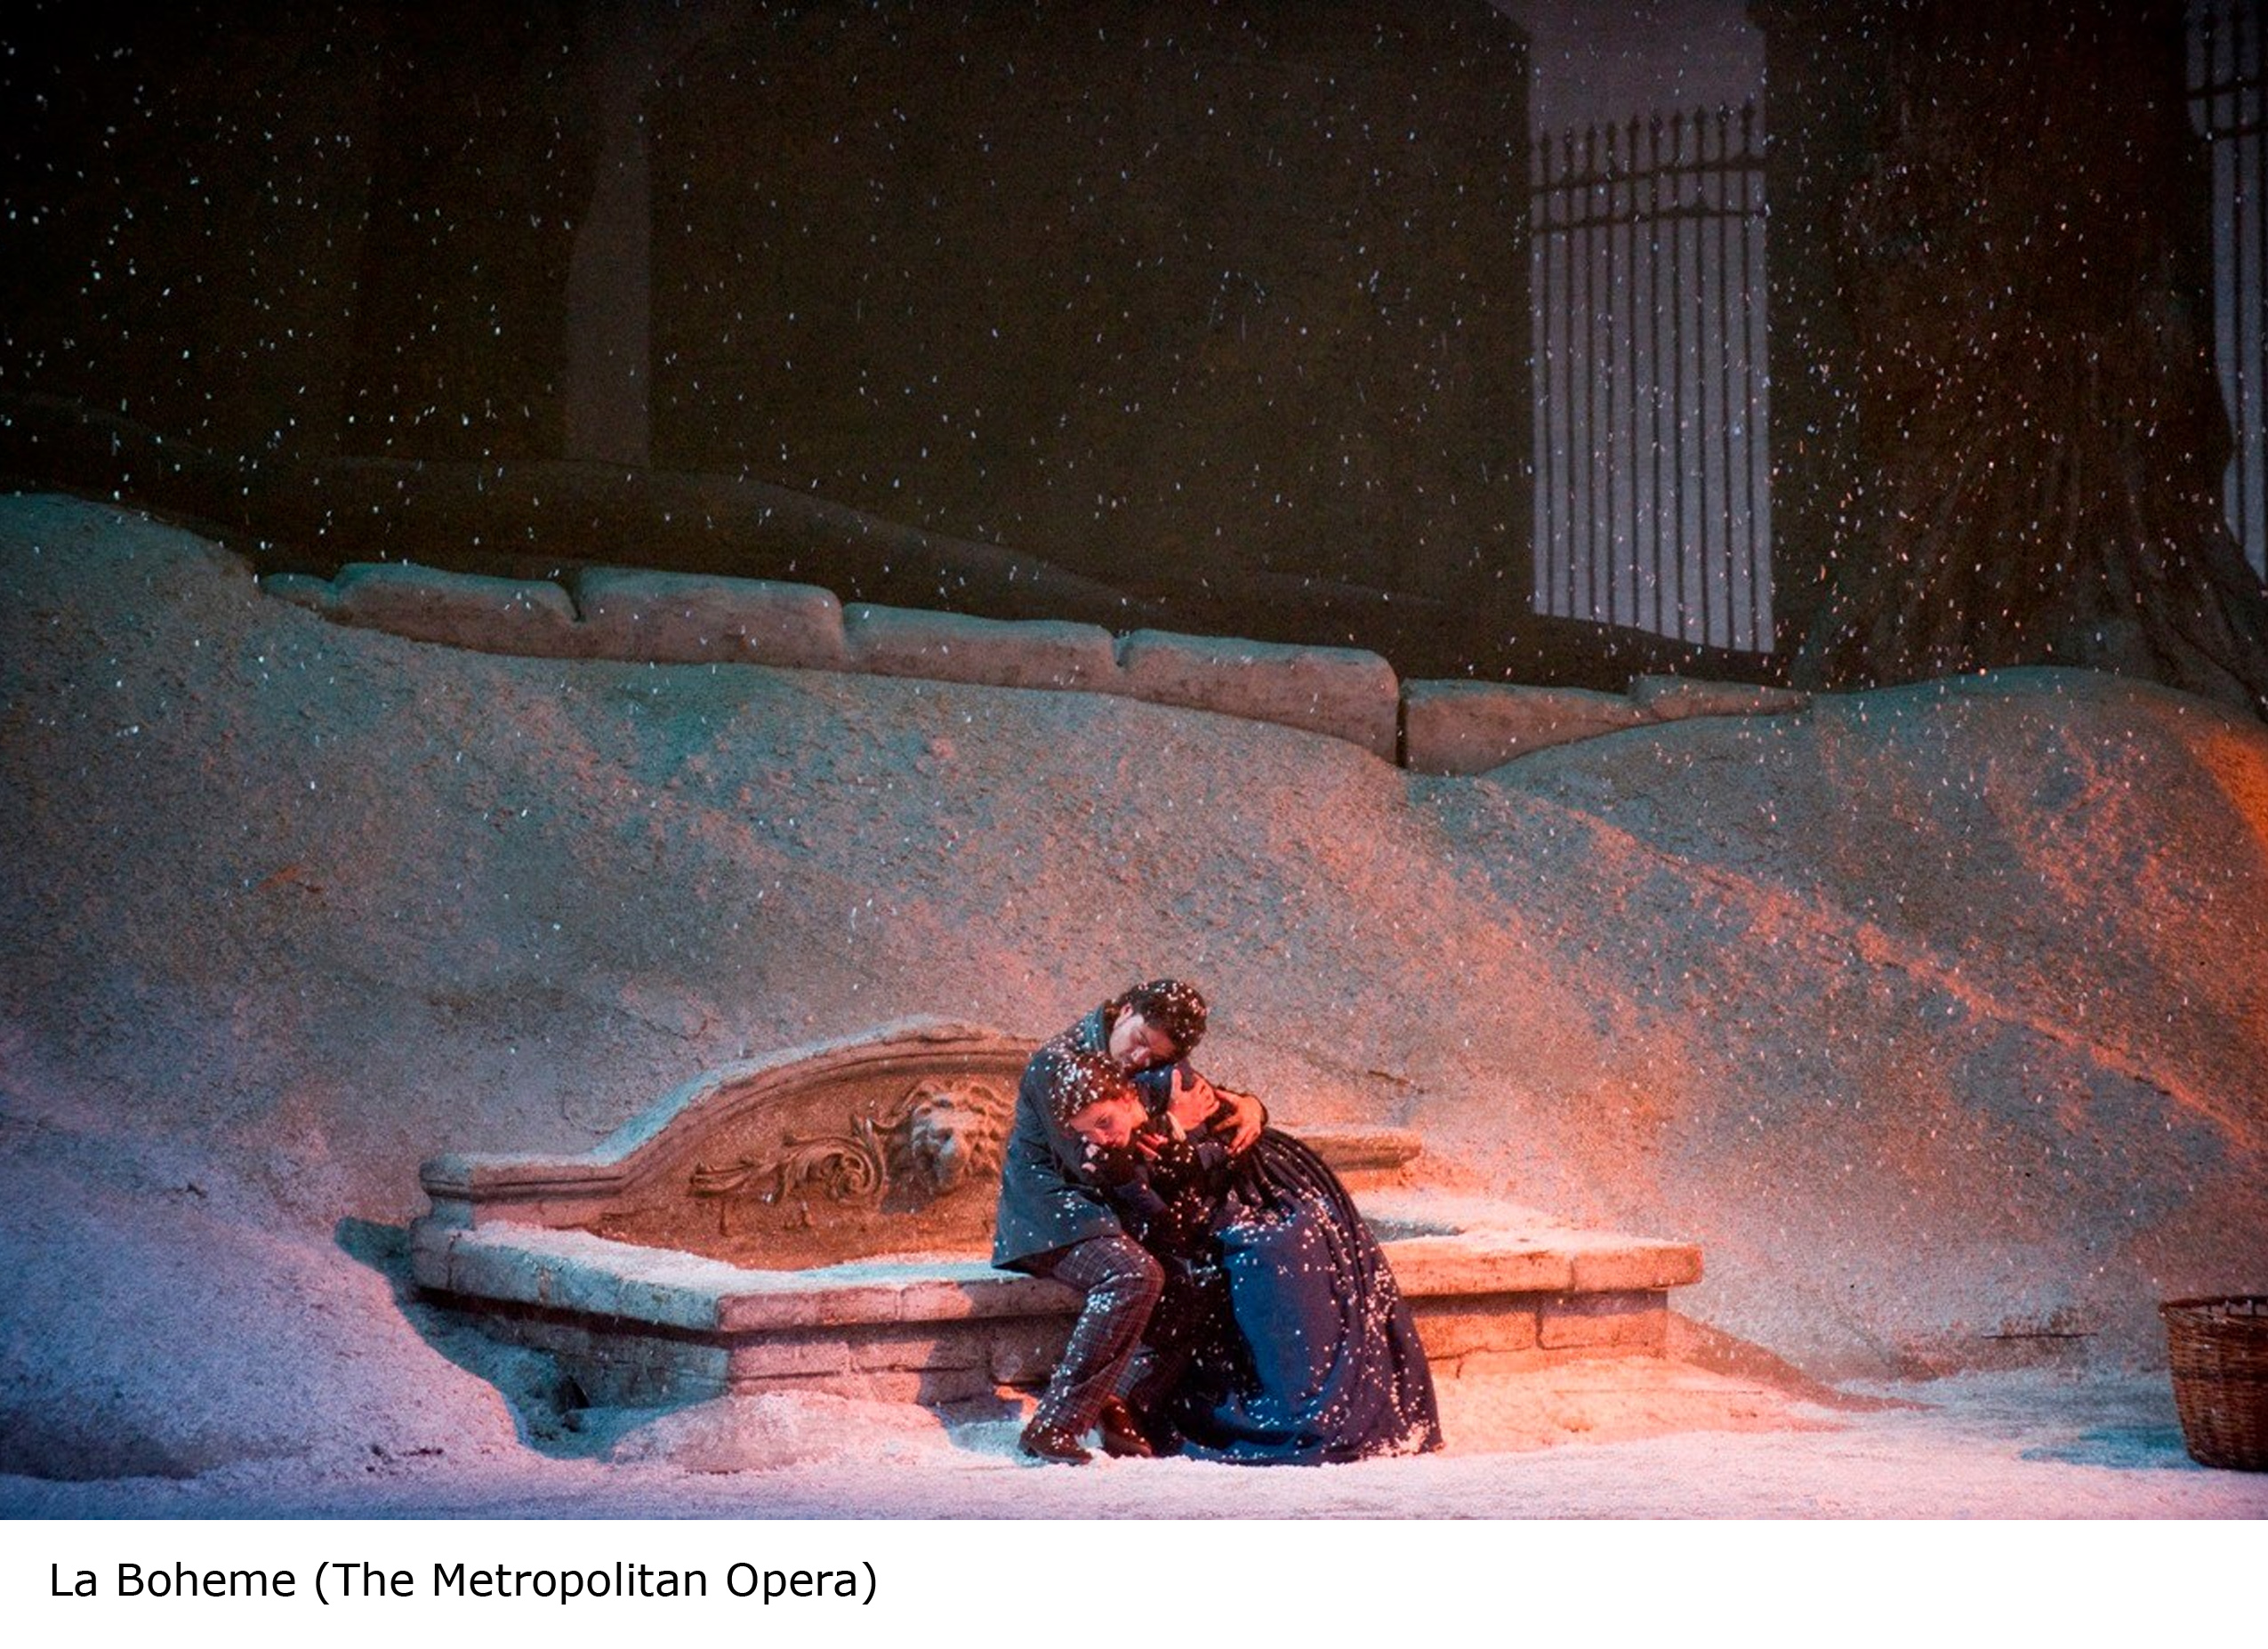 Ccp relaunches the metropolitan opera live in hd at greenbelt makati sssip - Vie de boheme definition ...